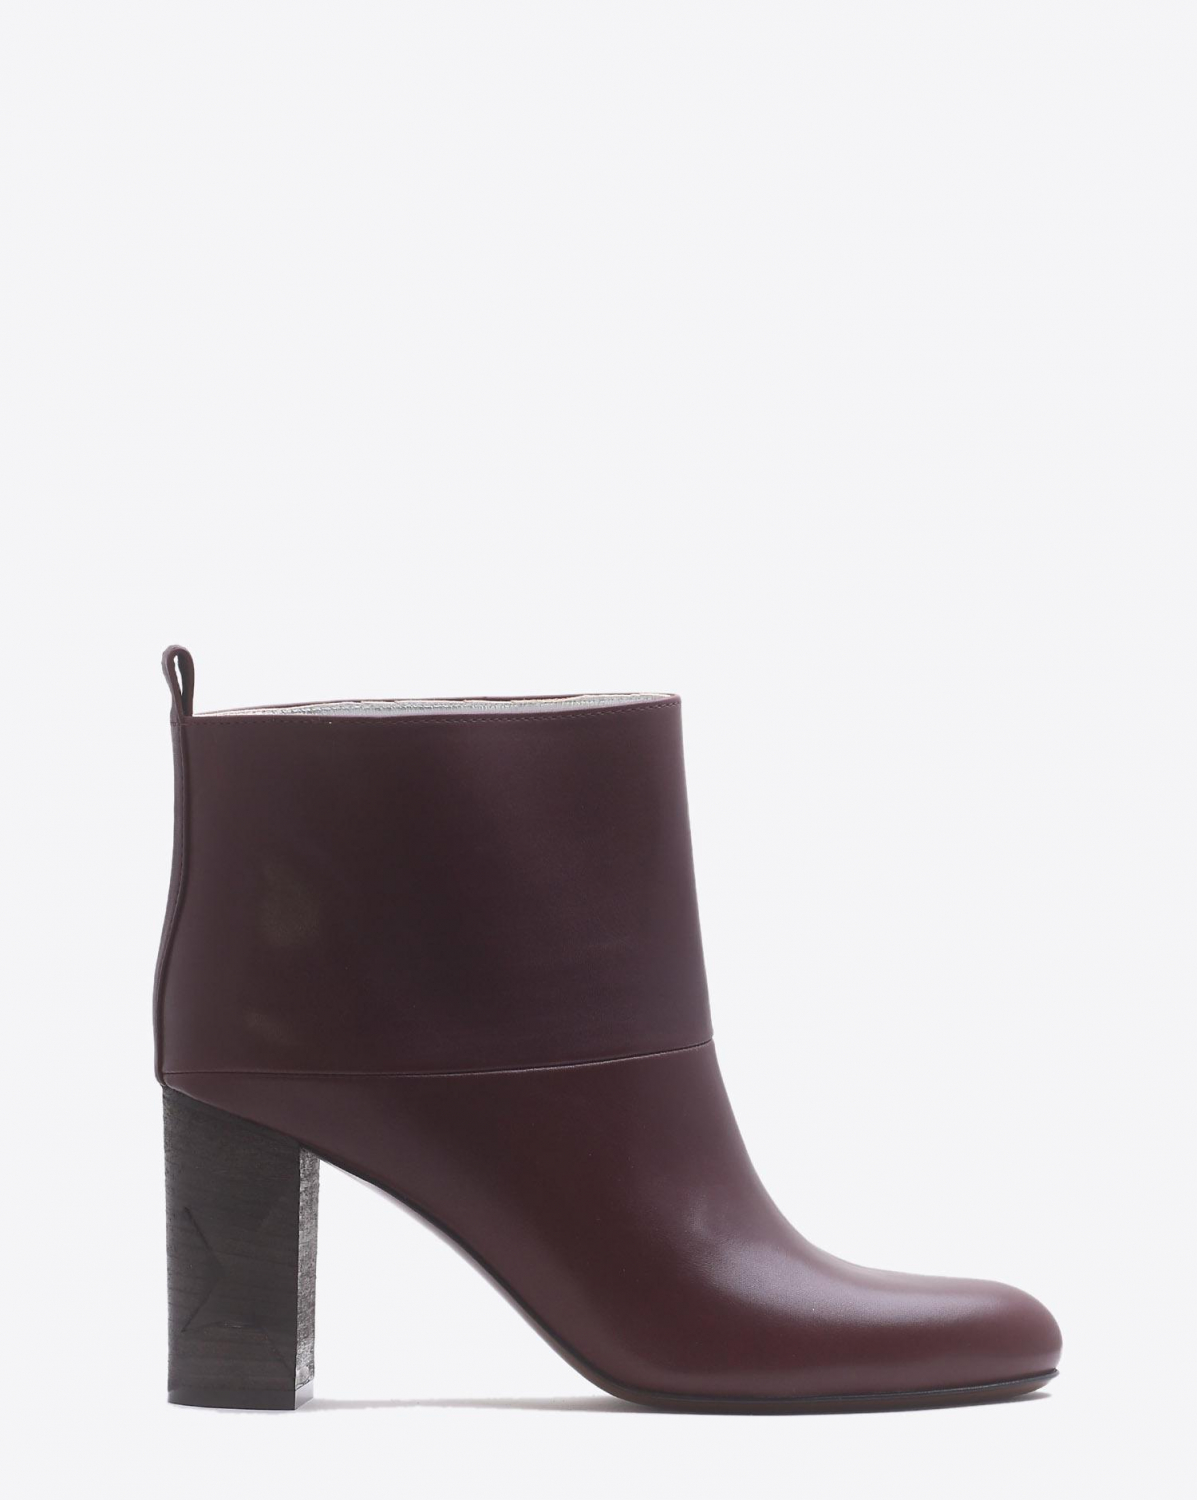 Golden Goose Woman Chaussures Collection Boots Greta - Wine Red Leather